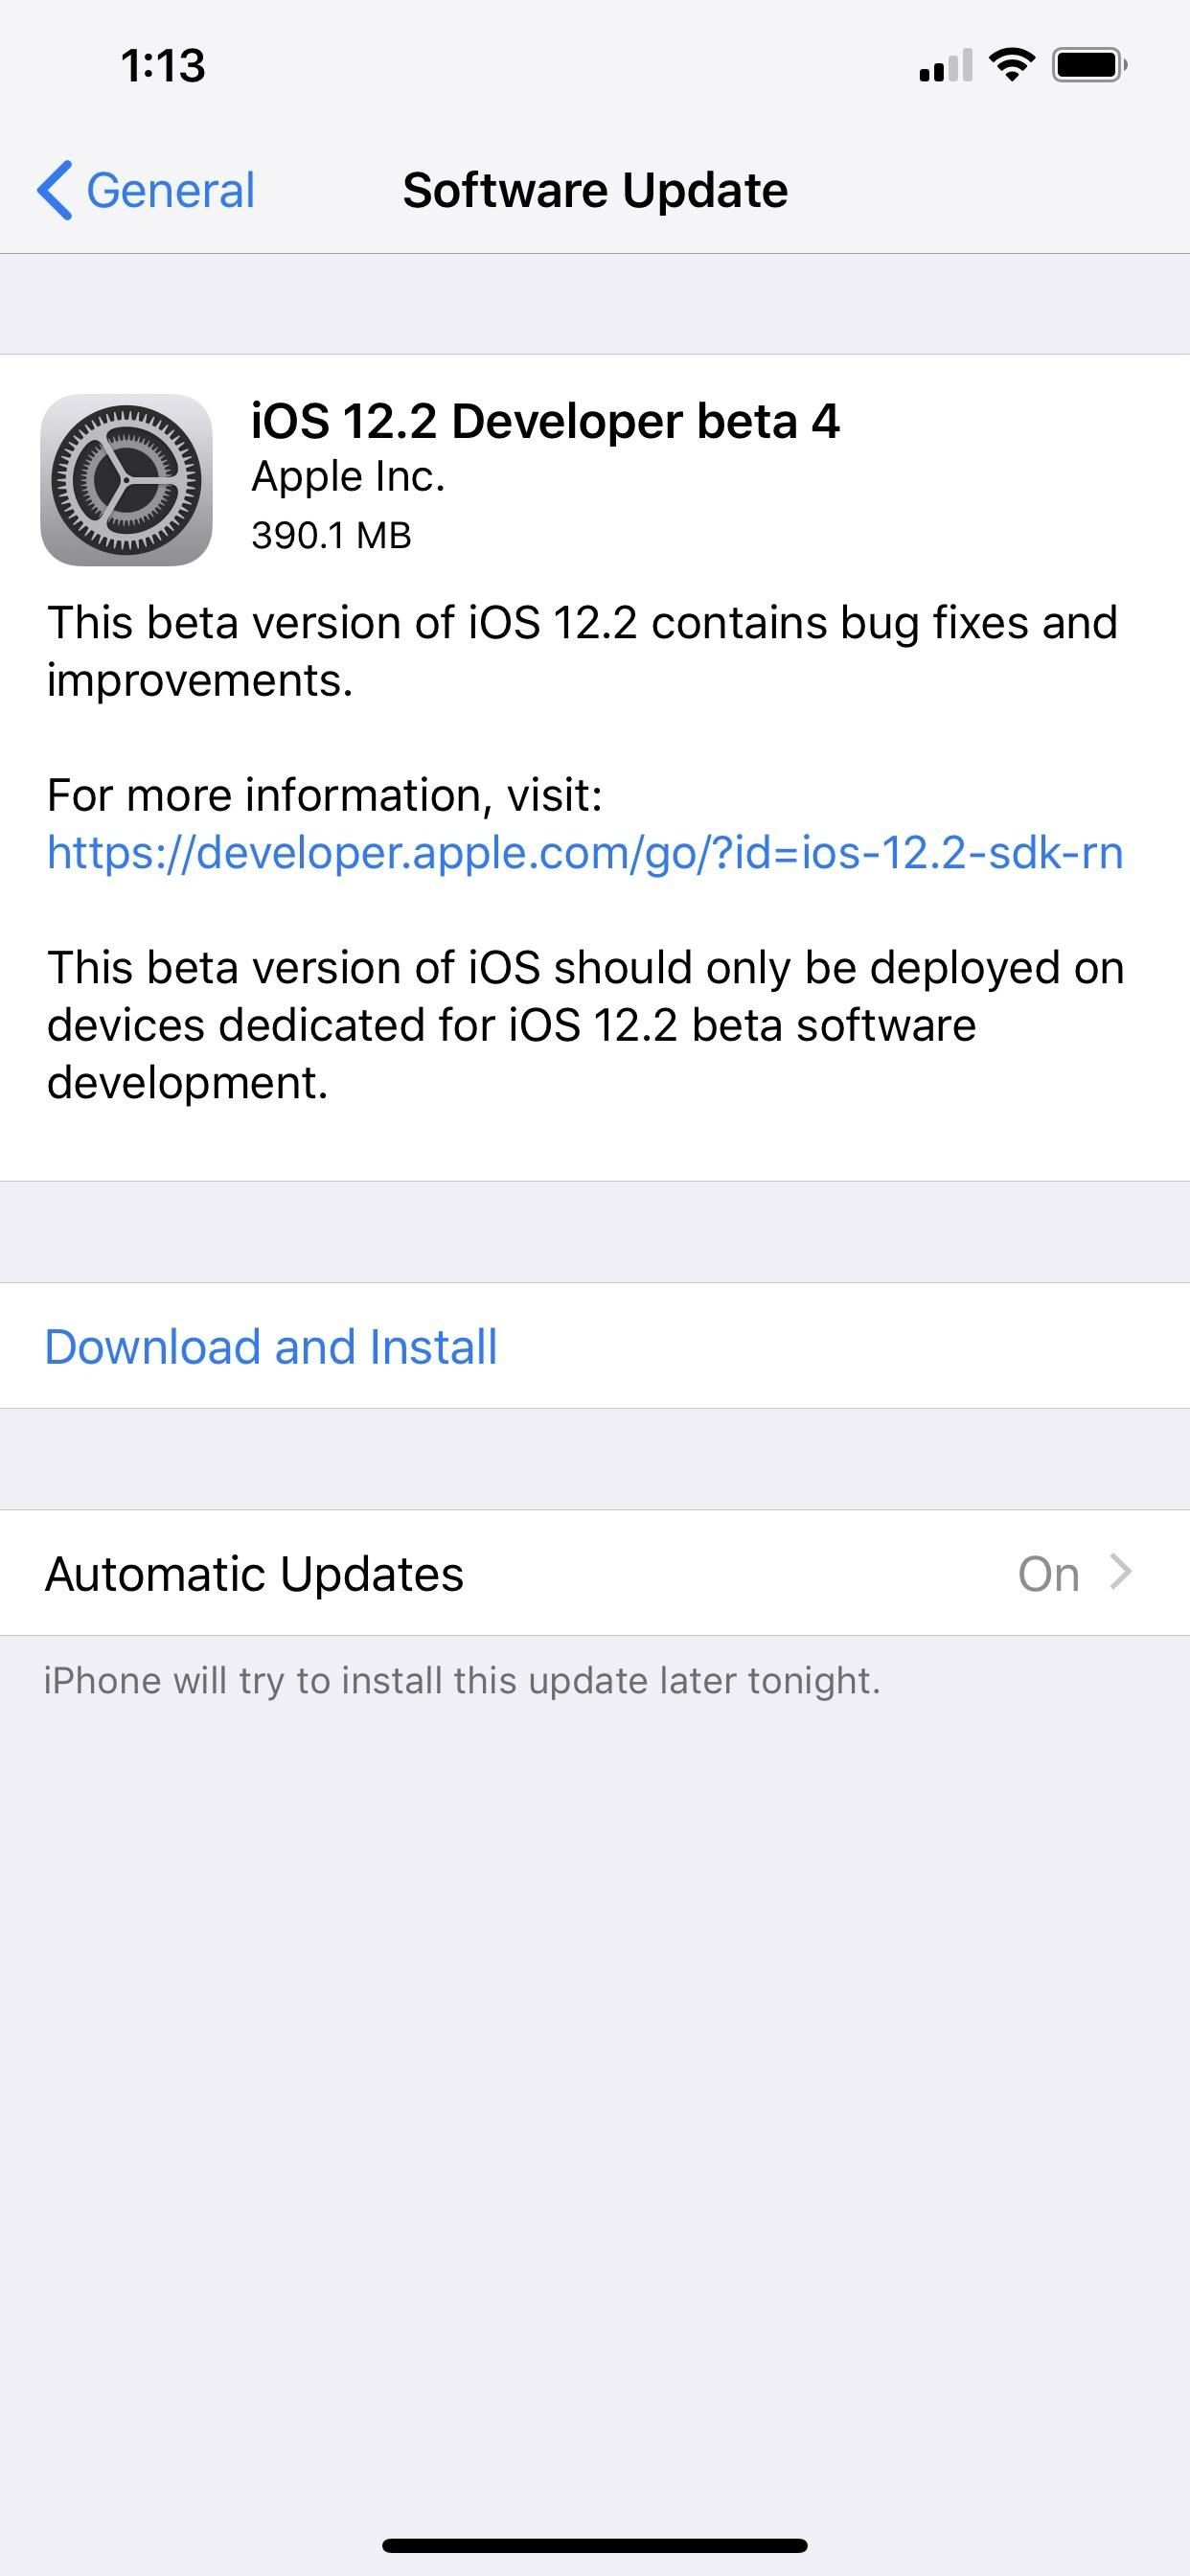 Apple recently released iOS 12.2 Developer Beta 4 for iPhone with updated icons and hidden bug fixes